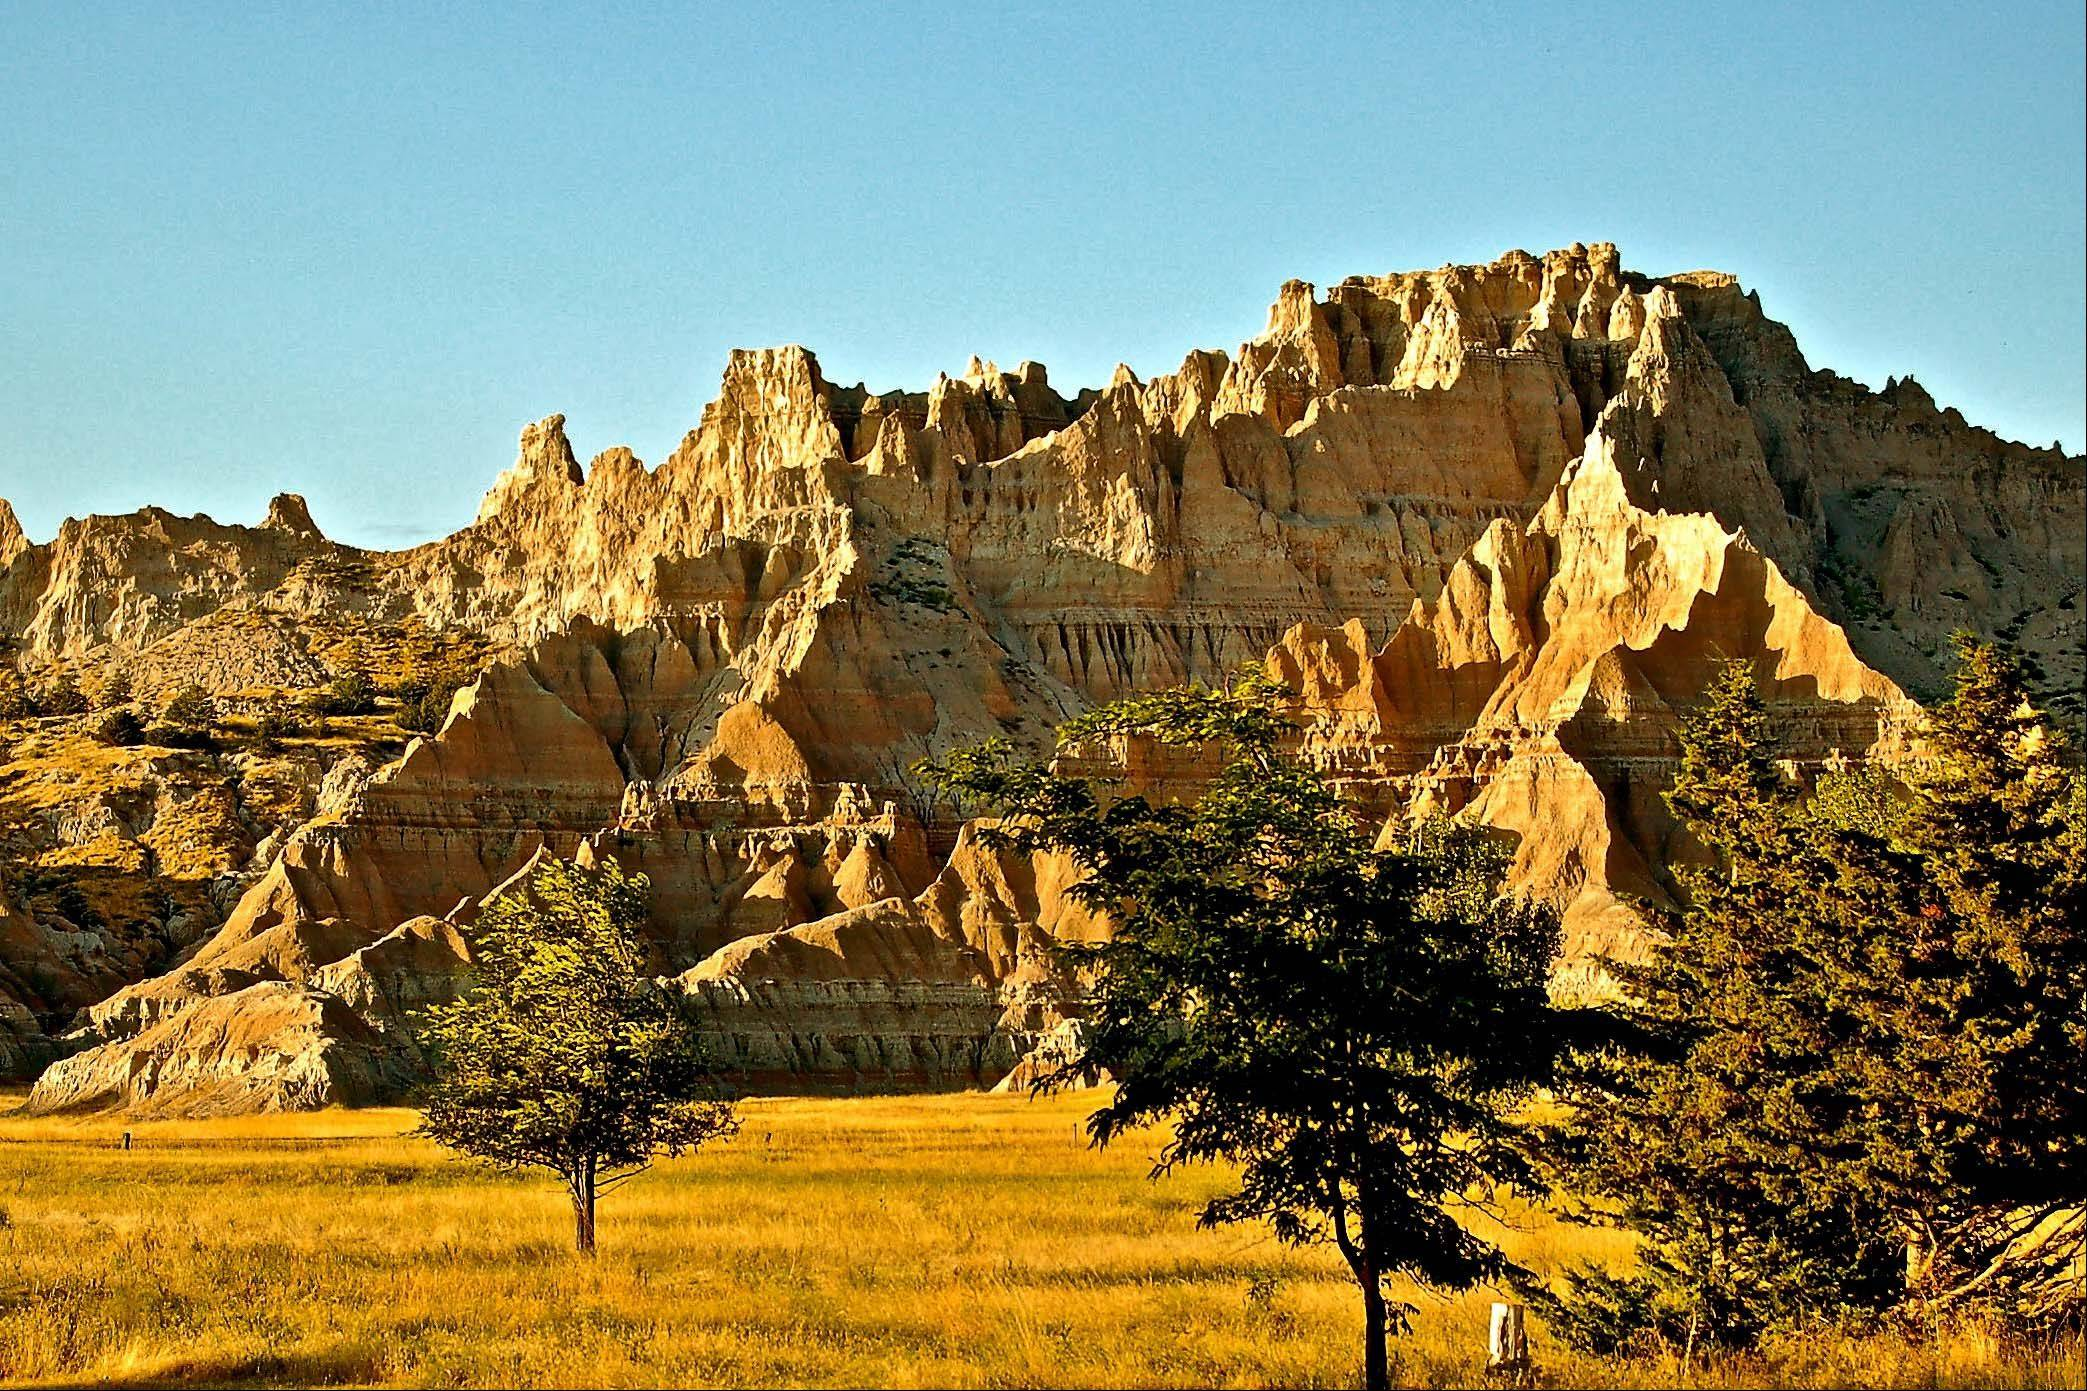 This picture was taken in Badlands National Park, South Dakota while walking a trail one early evening this past September. The stratified colors are beautiful in the evening especially if the ground is damp from a recent rain.